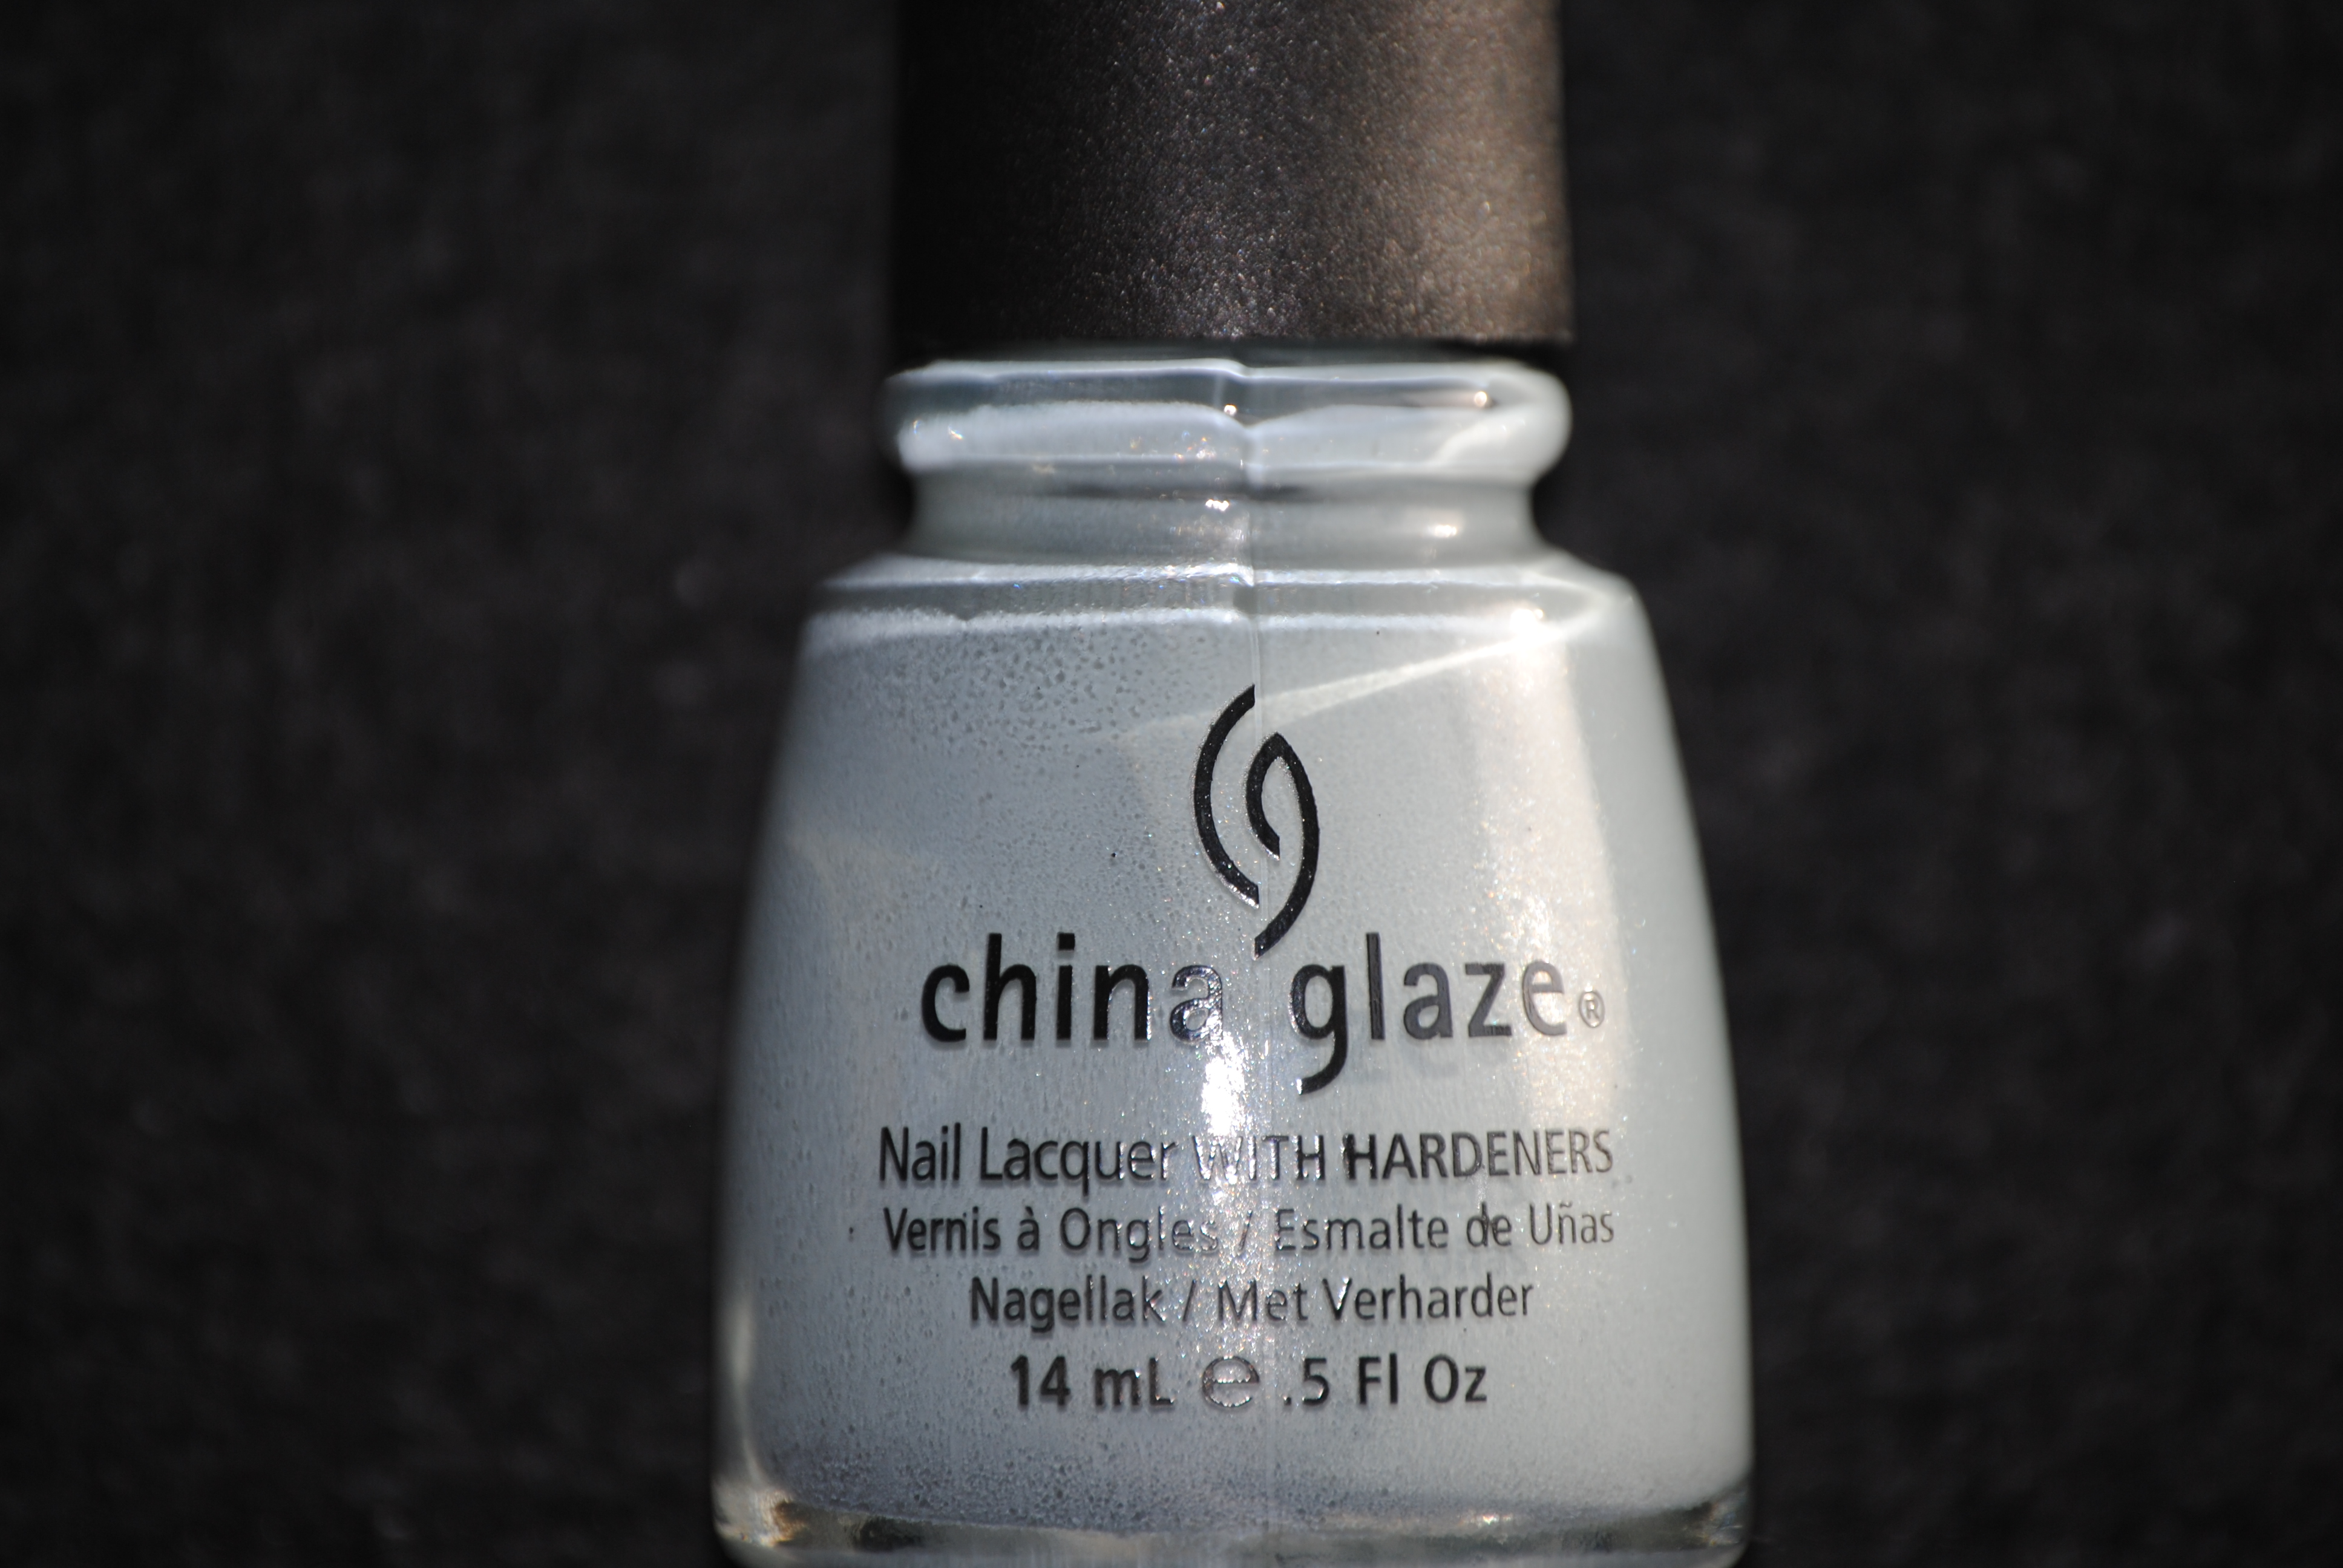 Spray on nail polish china glaze nail spray reviews - When I Recently Reviewed China Glaze S Anchors Away Collection Part 1 Part 2 Part 3 The Only Shade That I Left Out Was Sea Spray